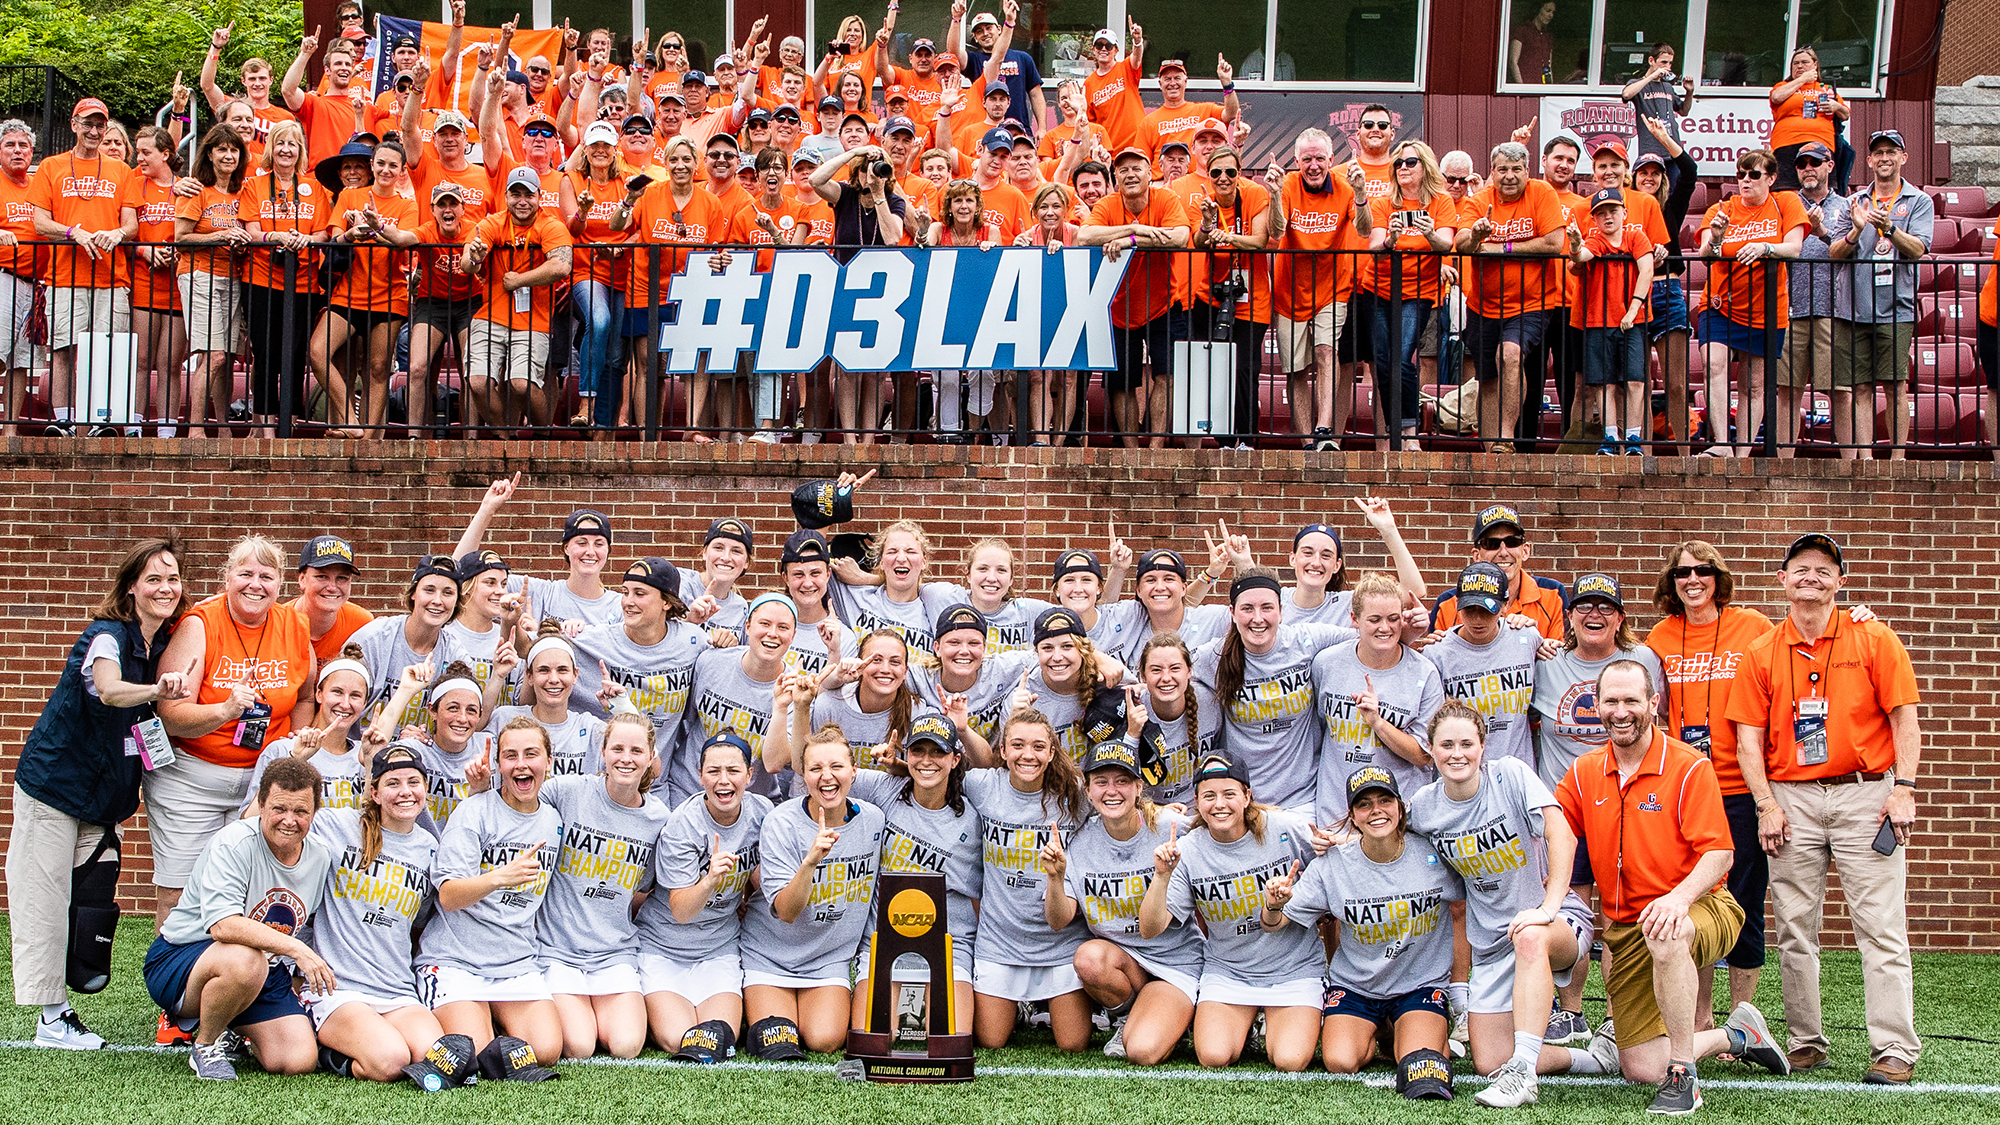 2018 Womens Lacrosse with national champion team and family